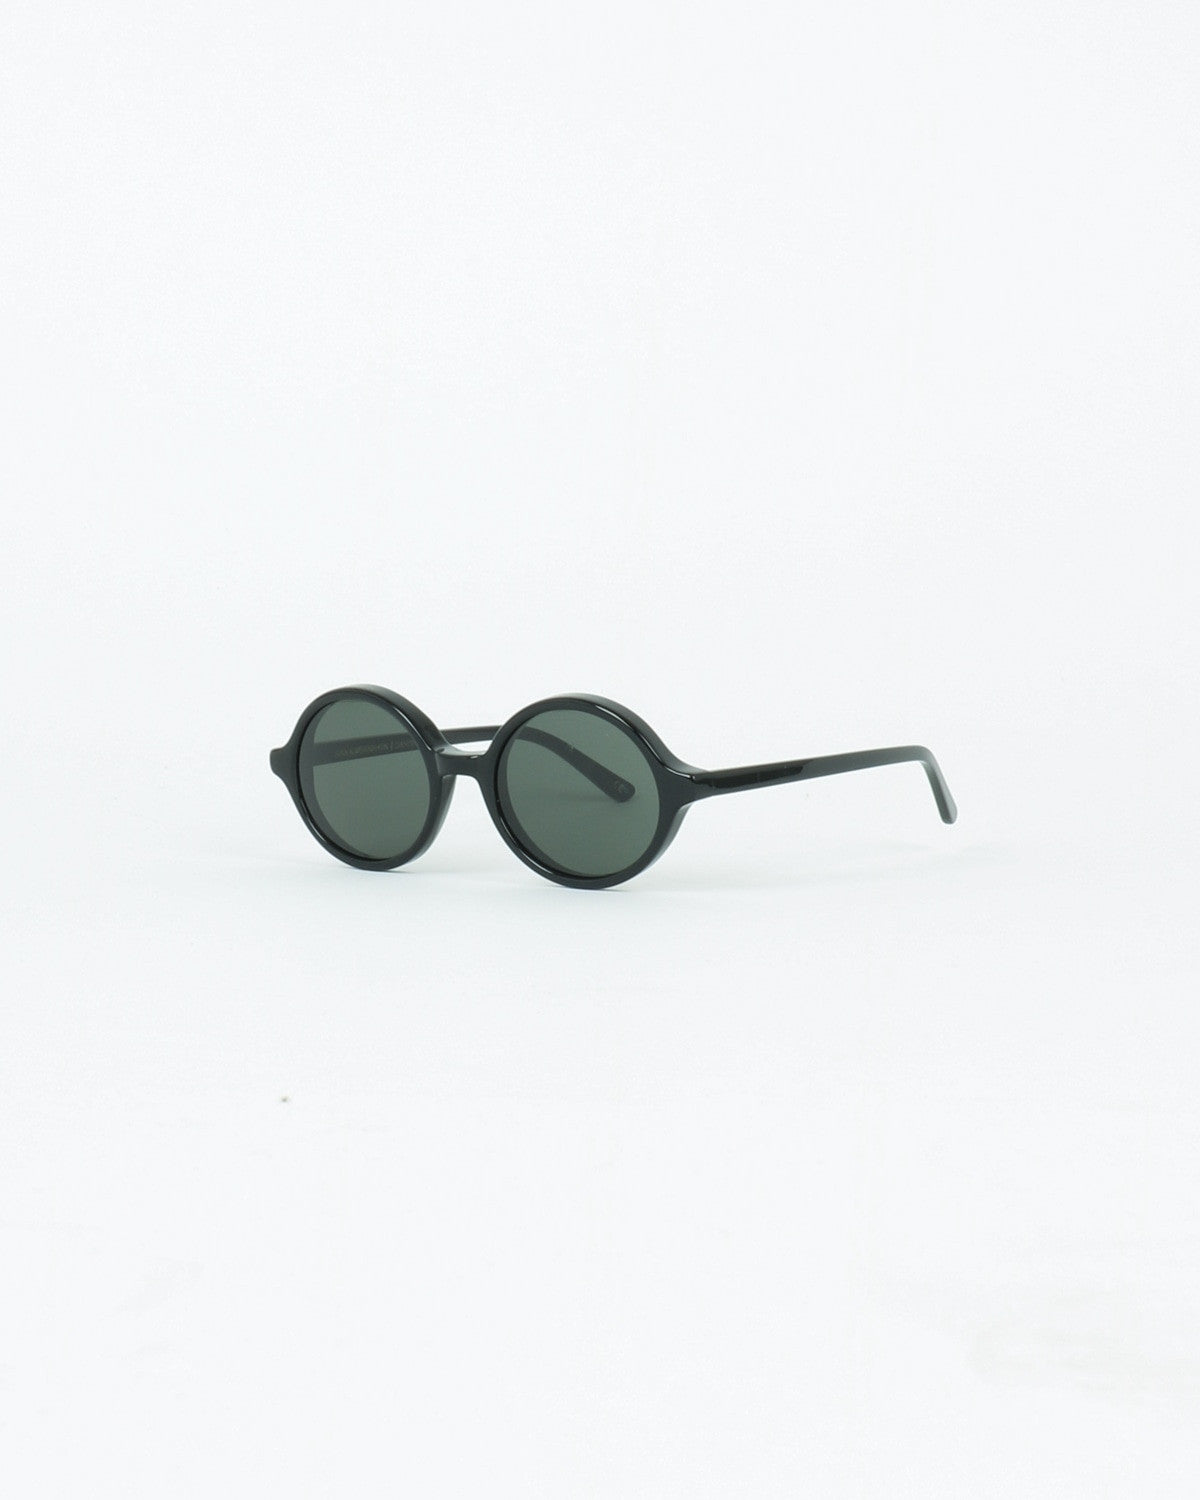 han kjobenhavn_doc_sunglasses_black_view_1_4